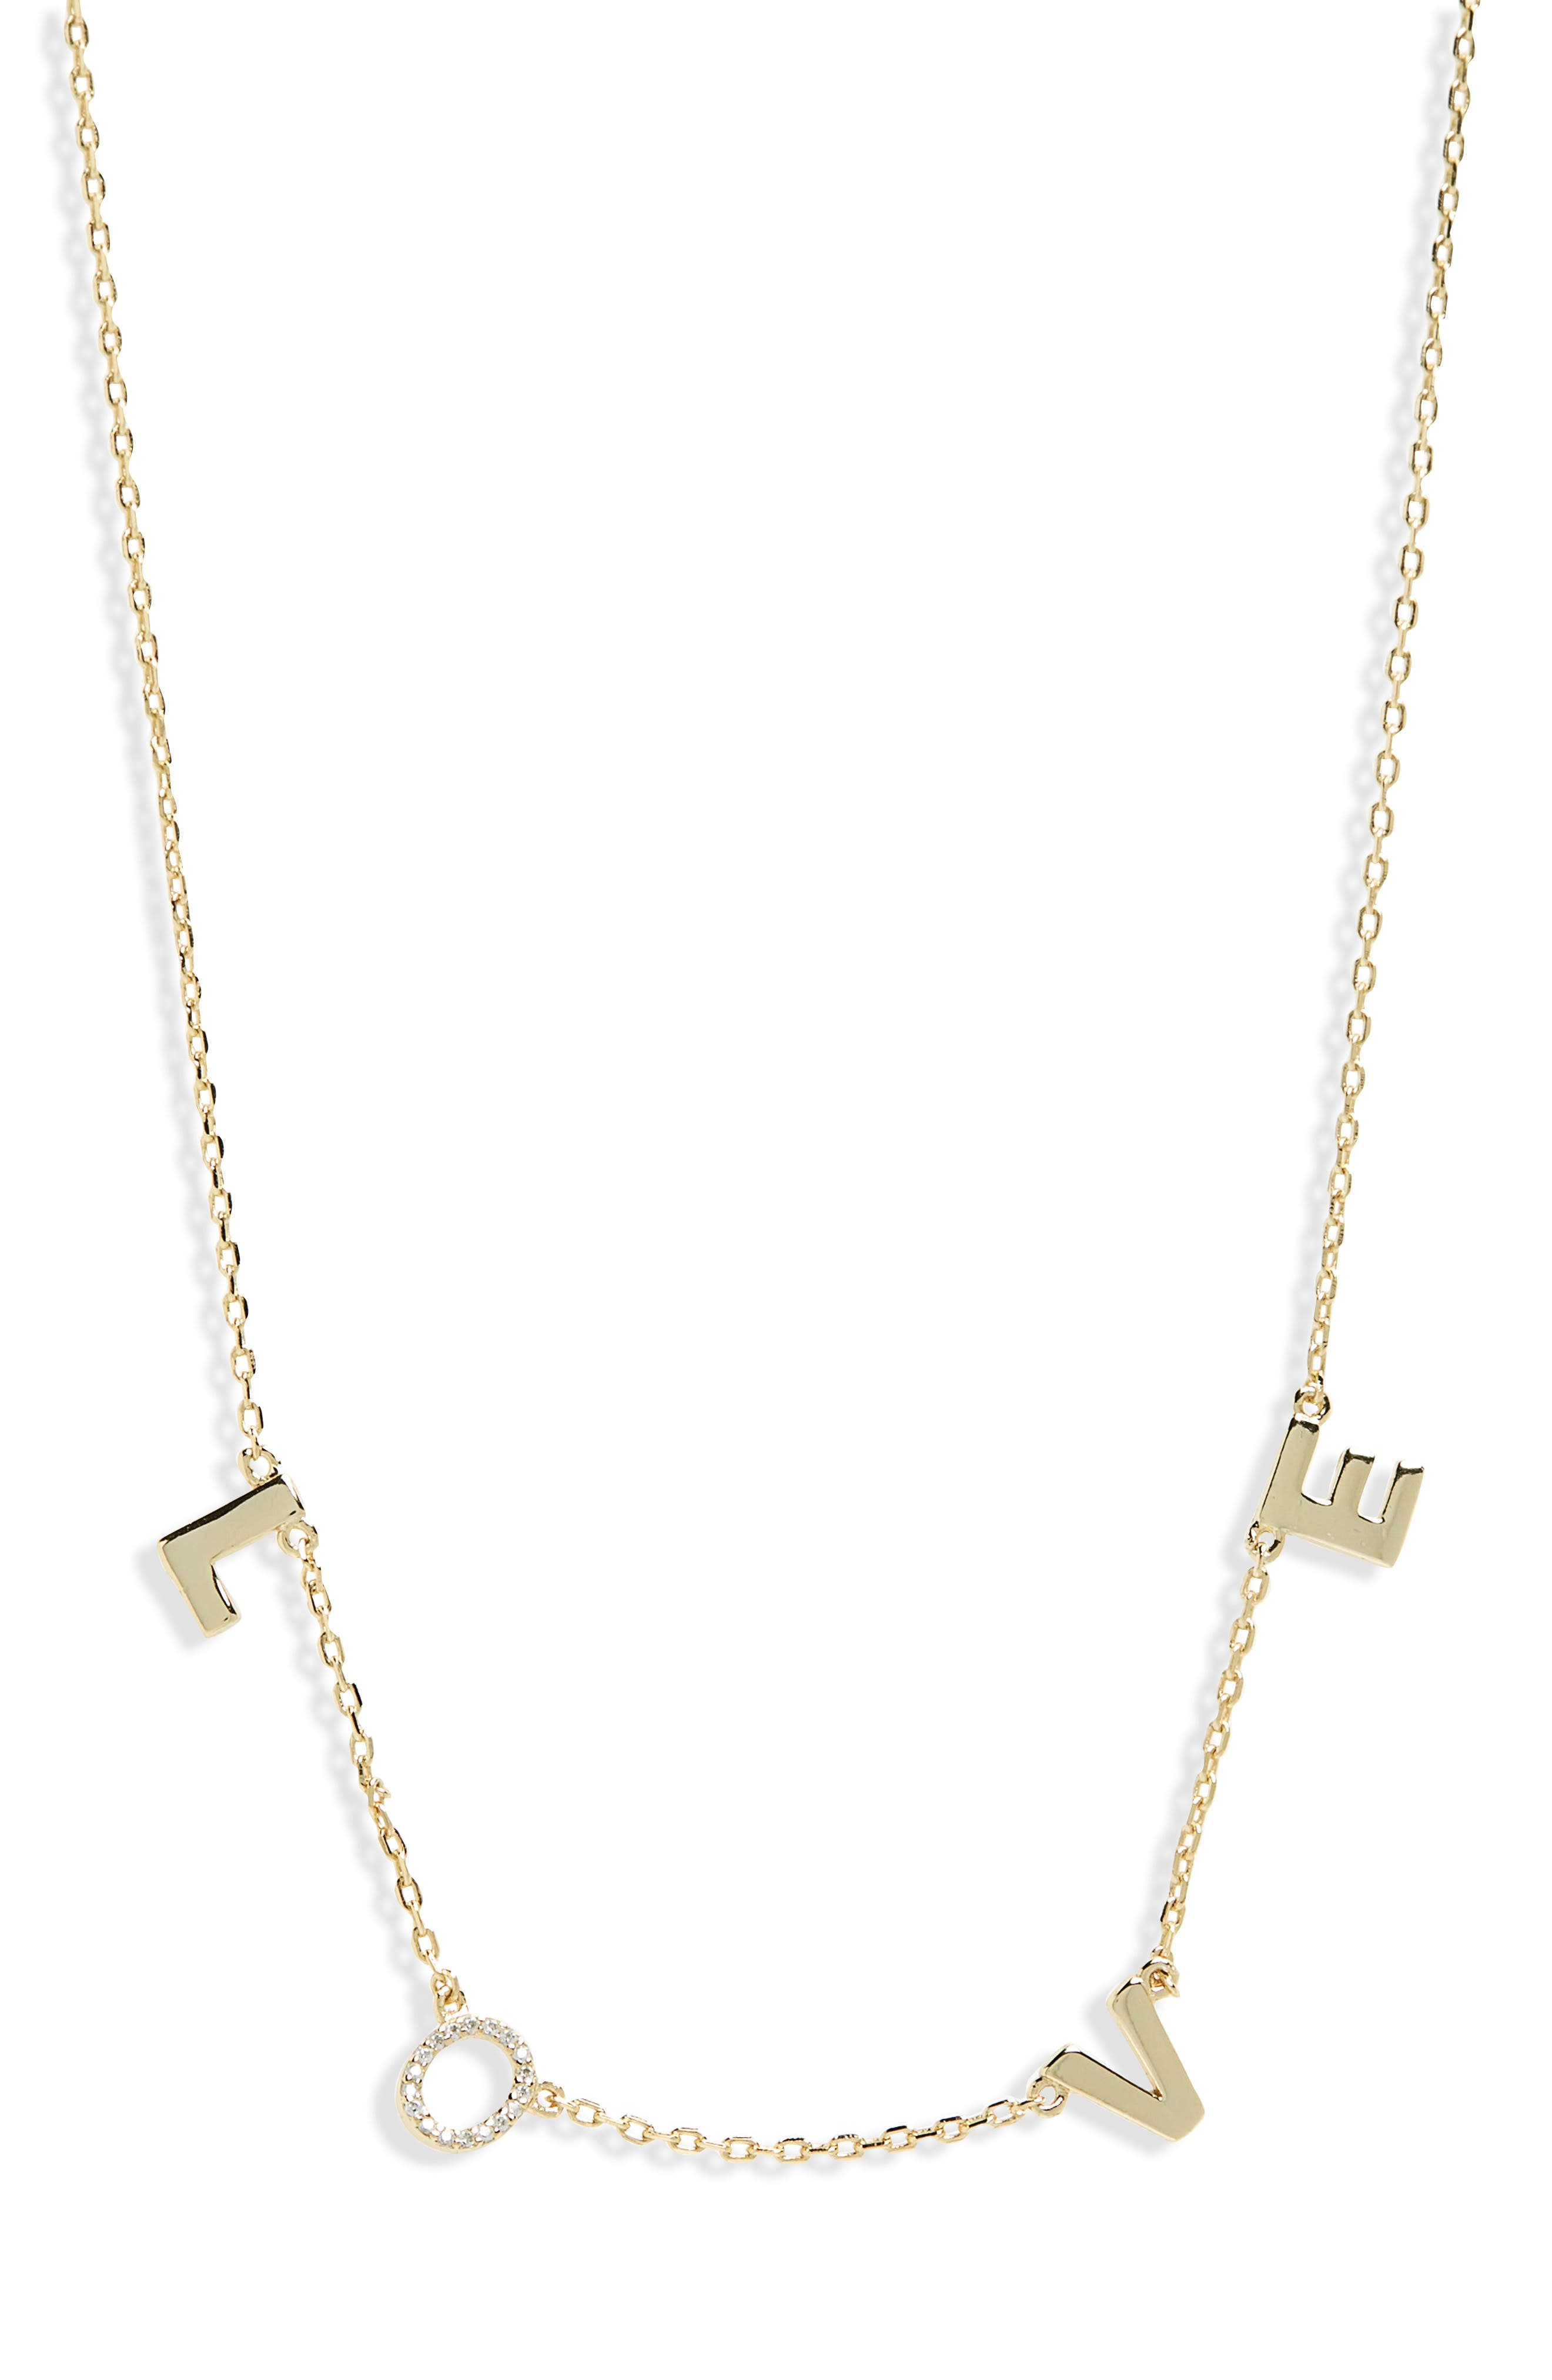 Crystal Love Necklace,                         Main,                         color, Yellow Gold